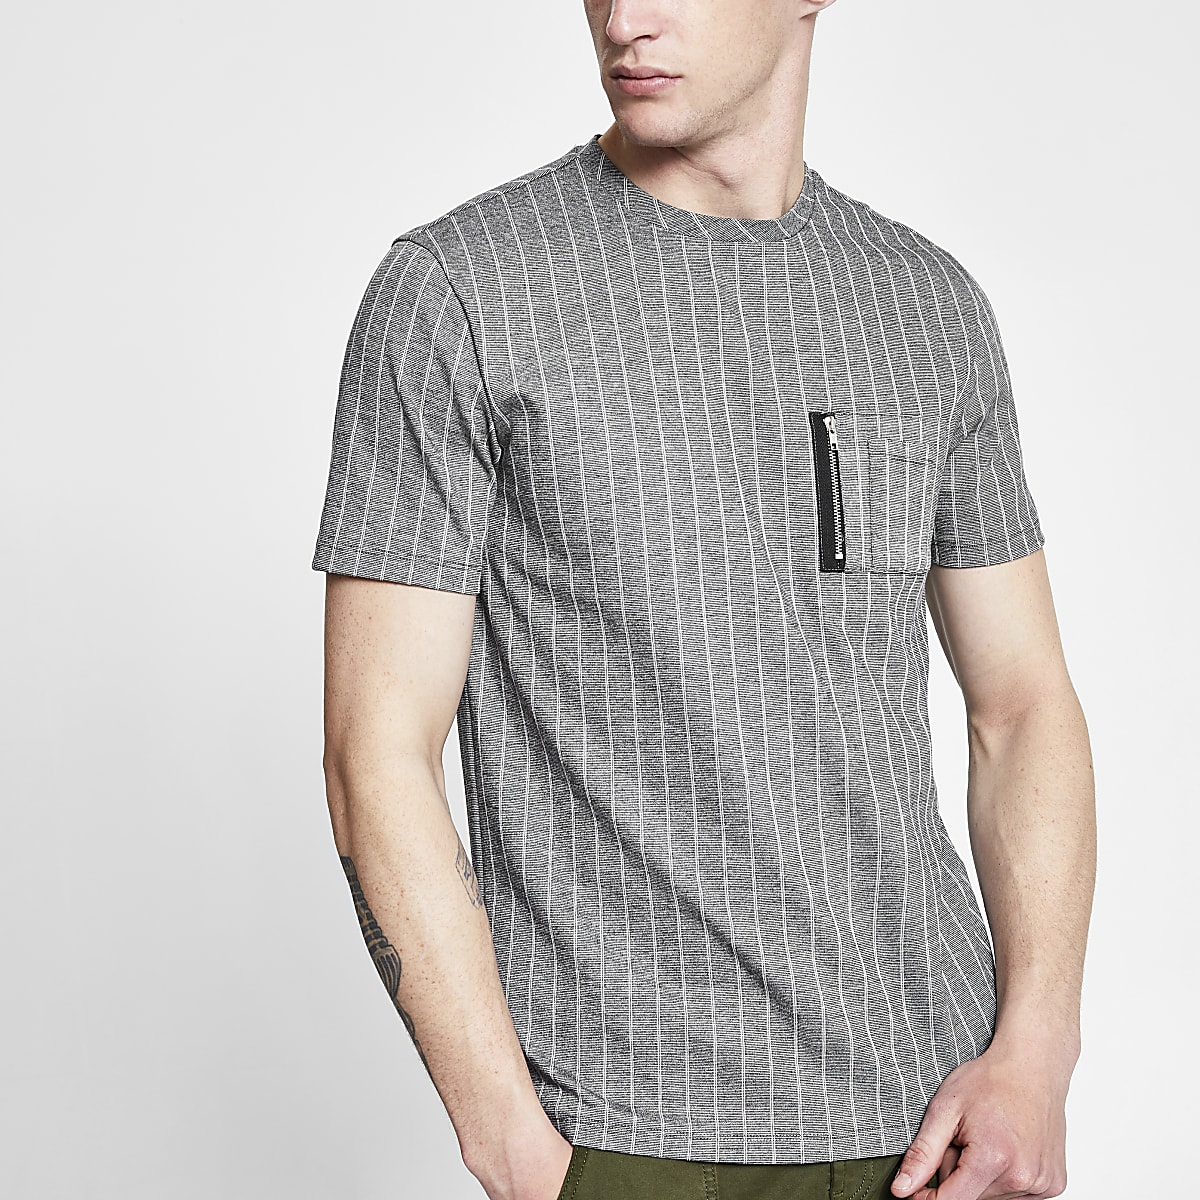 Grey pinstripe slim fit utility T-shirt